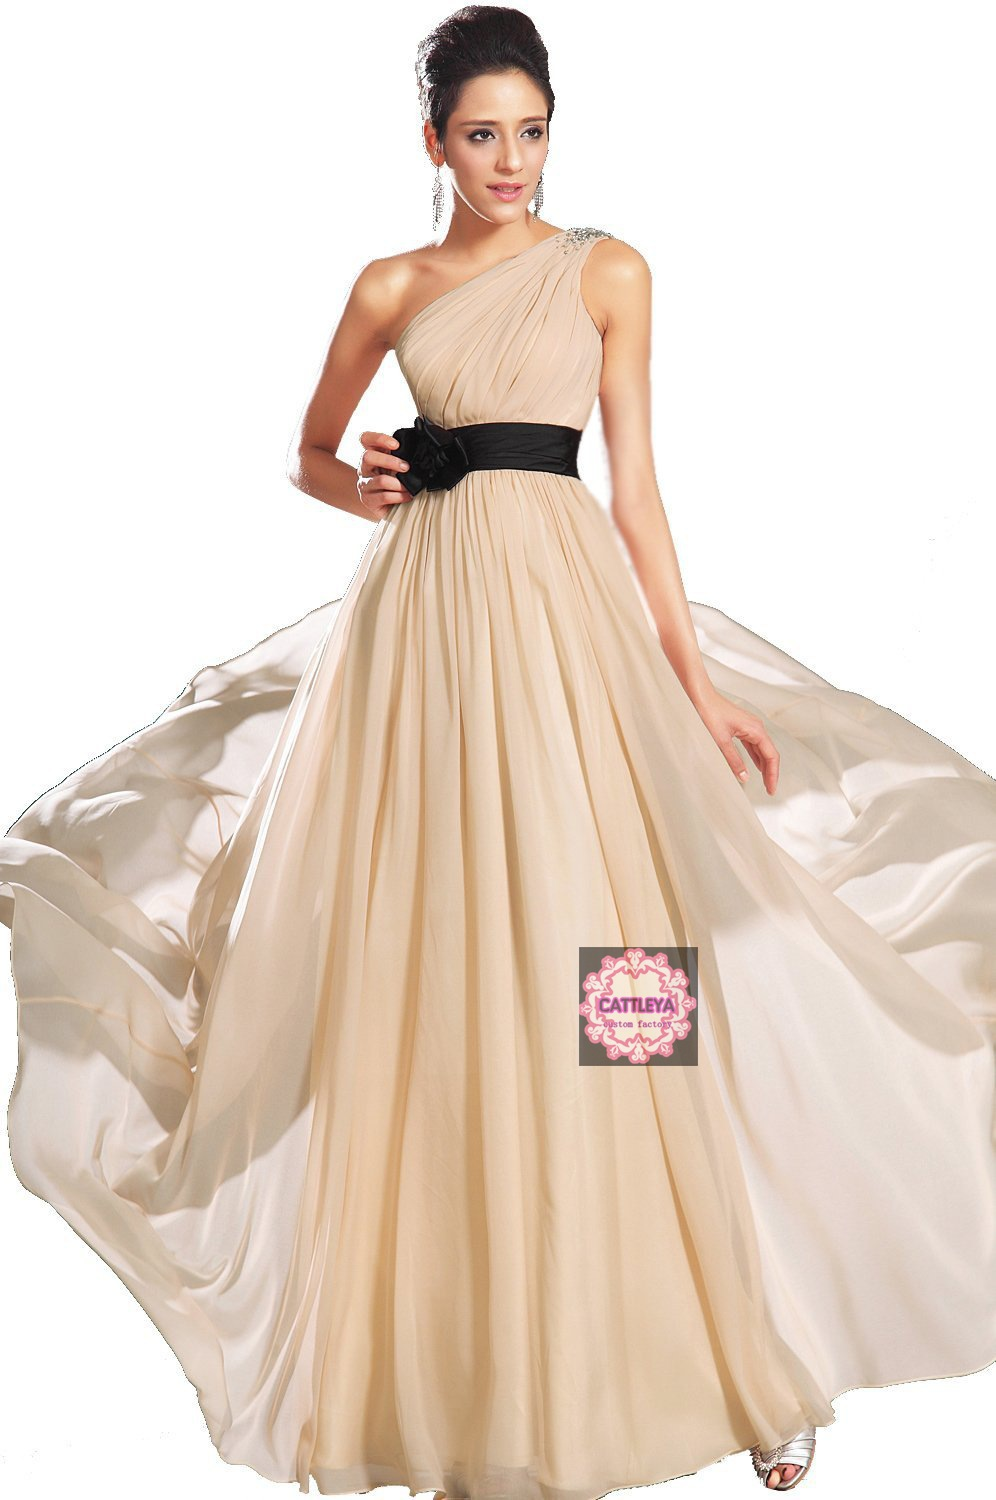 2013 sexy gowns one shoulder chiffon dress wedding dress ...